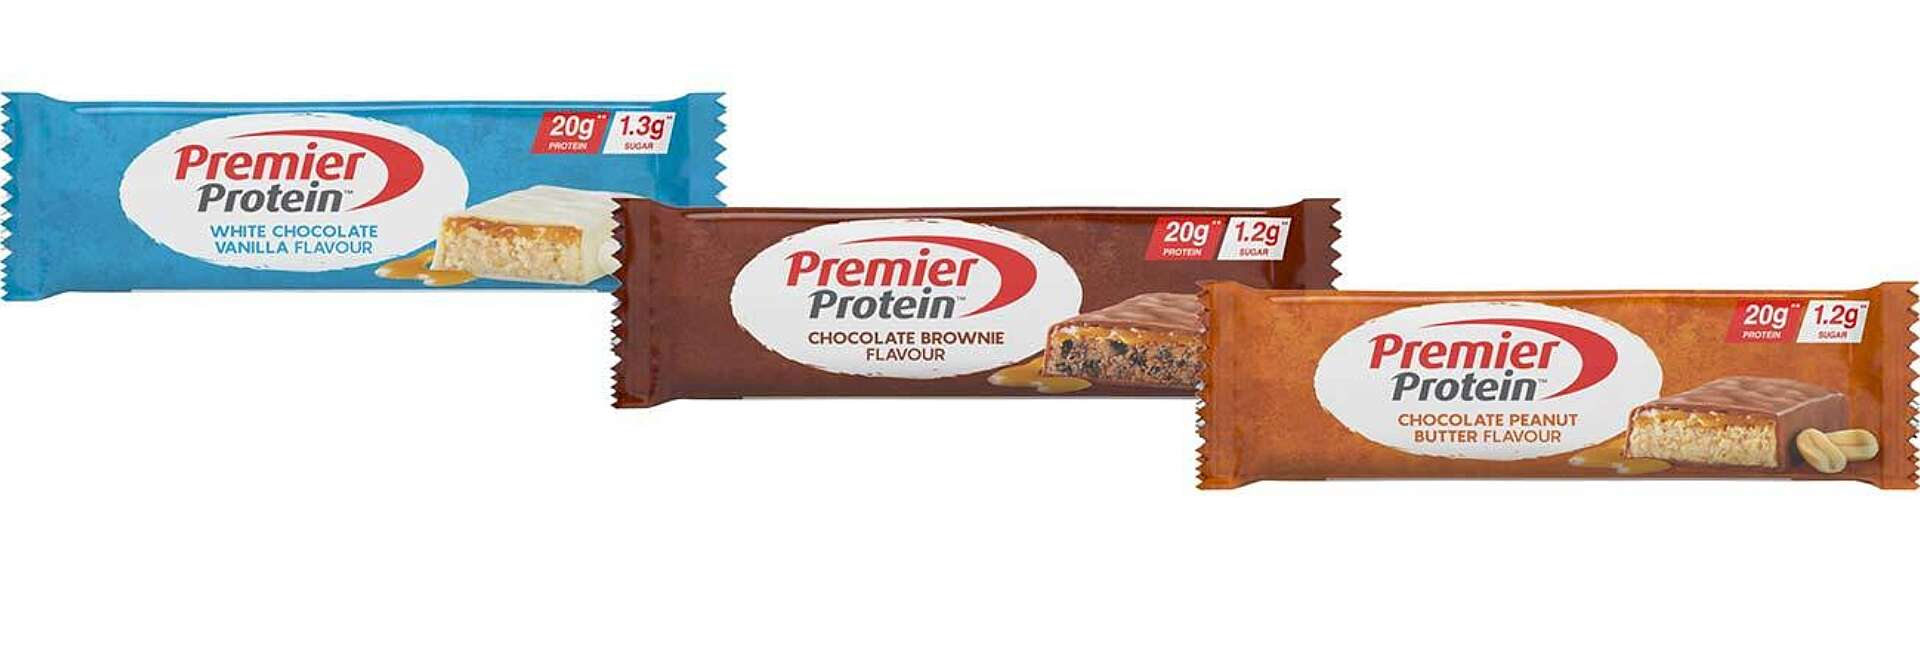 Premier Protein Bars: White Chocolate, Chocolate Brownie and Chocolate Peanut Butter.